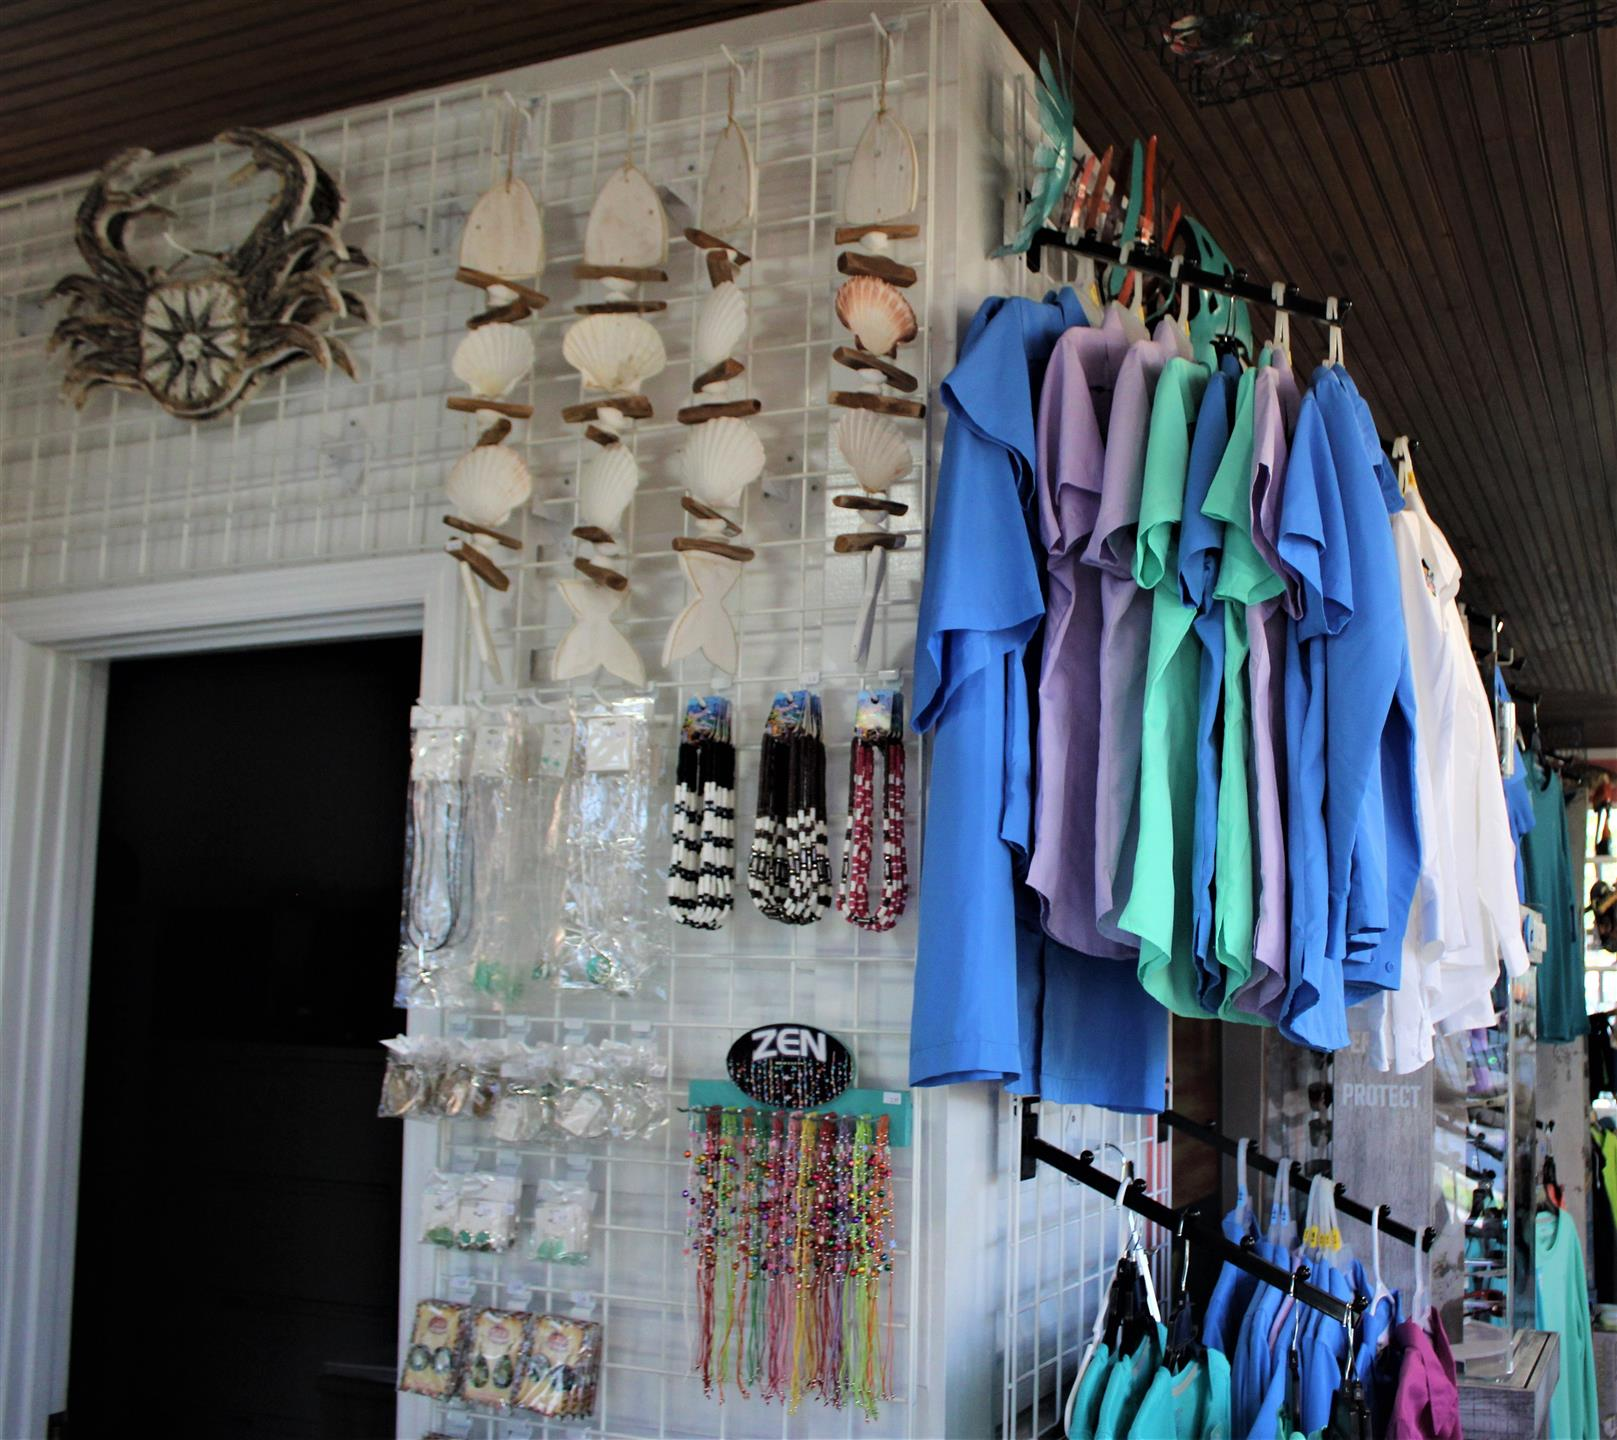 a gift shop with t-shirts, necklaces, bracelets, earrings, and seashell and crab wall decor